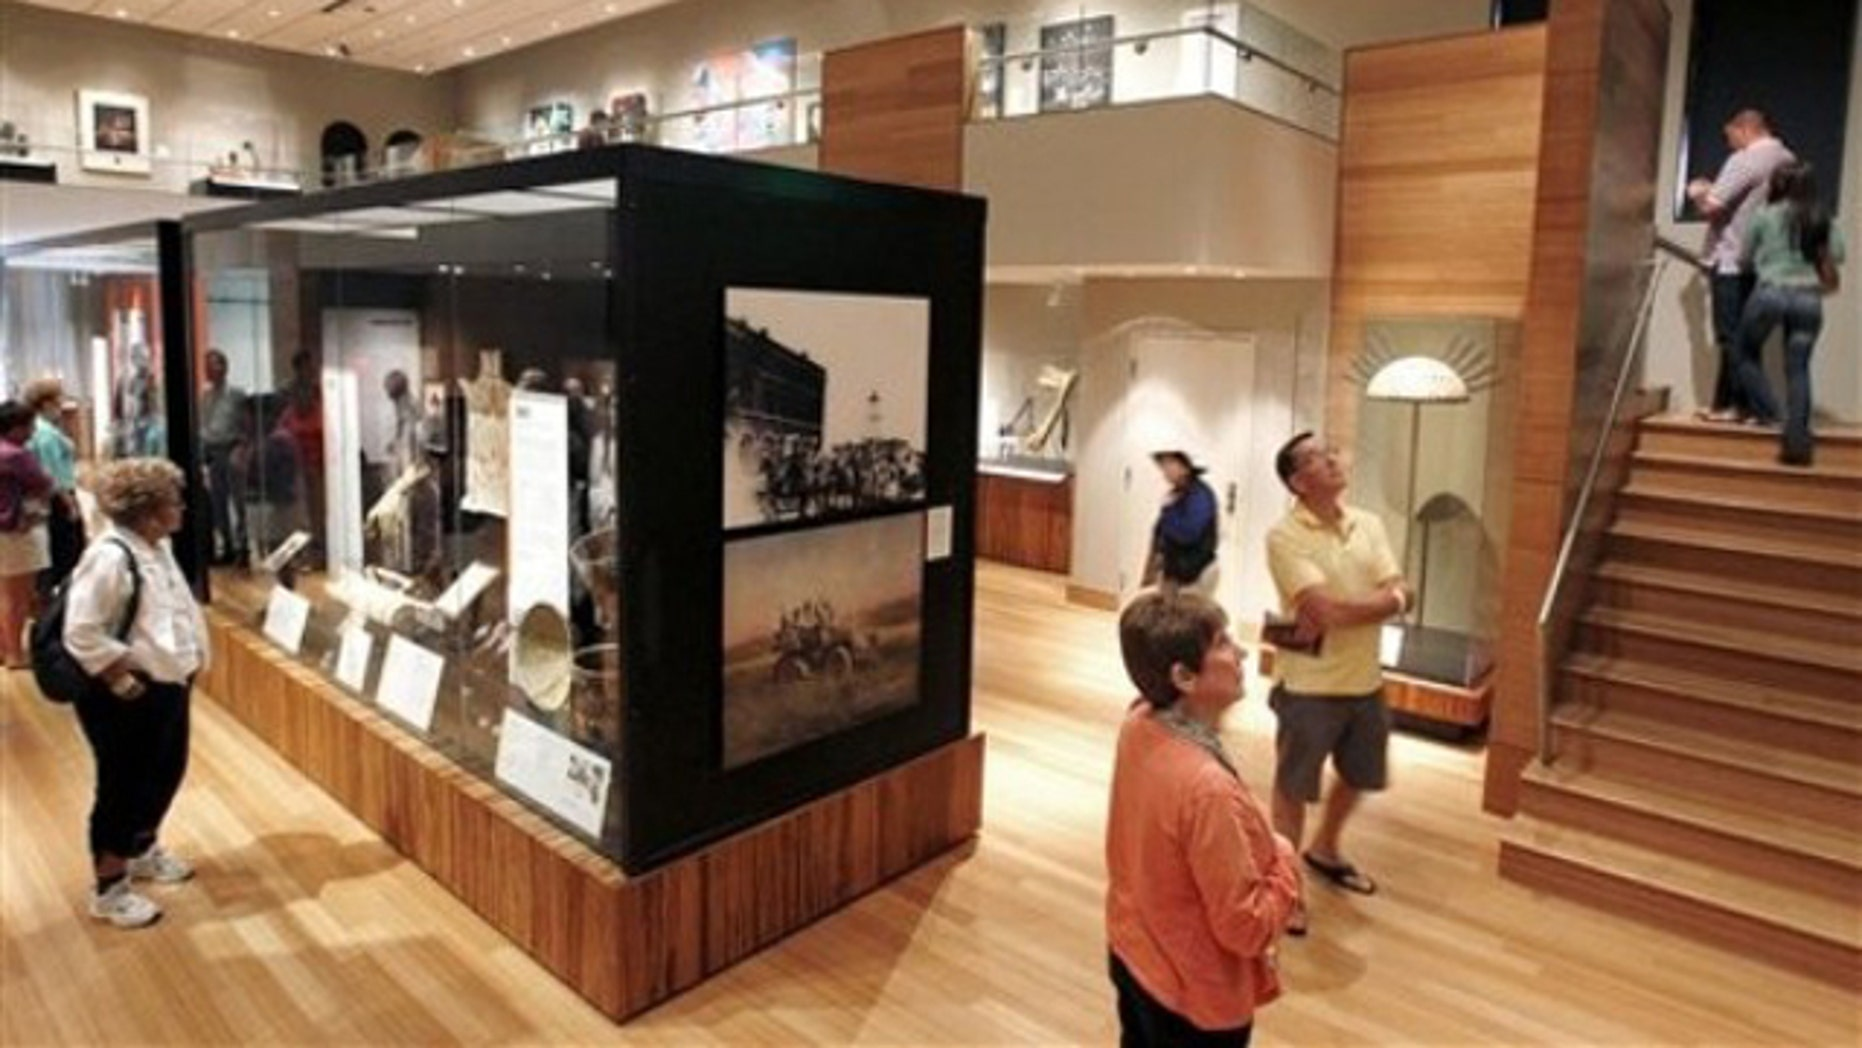 Feb. 12, 2012:  Patrons walk through an exhibit featuring Geronimo and other Apache tribe warriors in history at The Heard Museum in Phoenix.